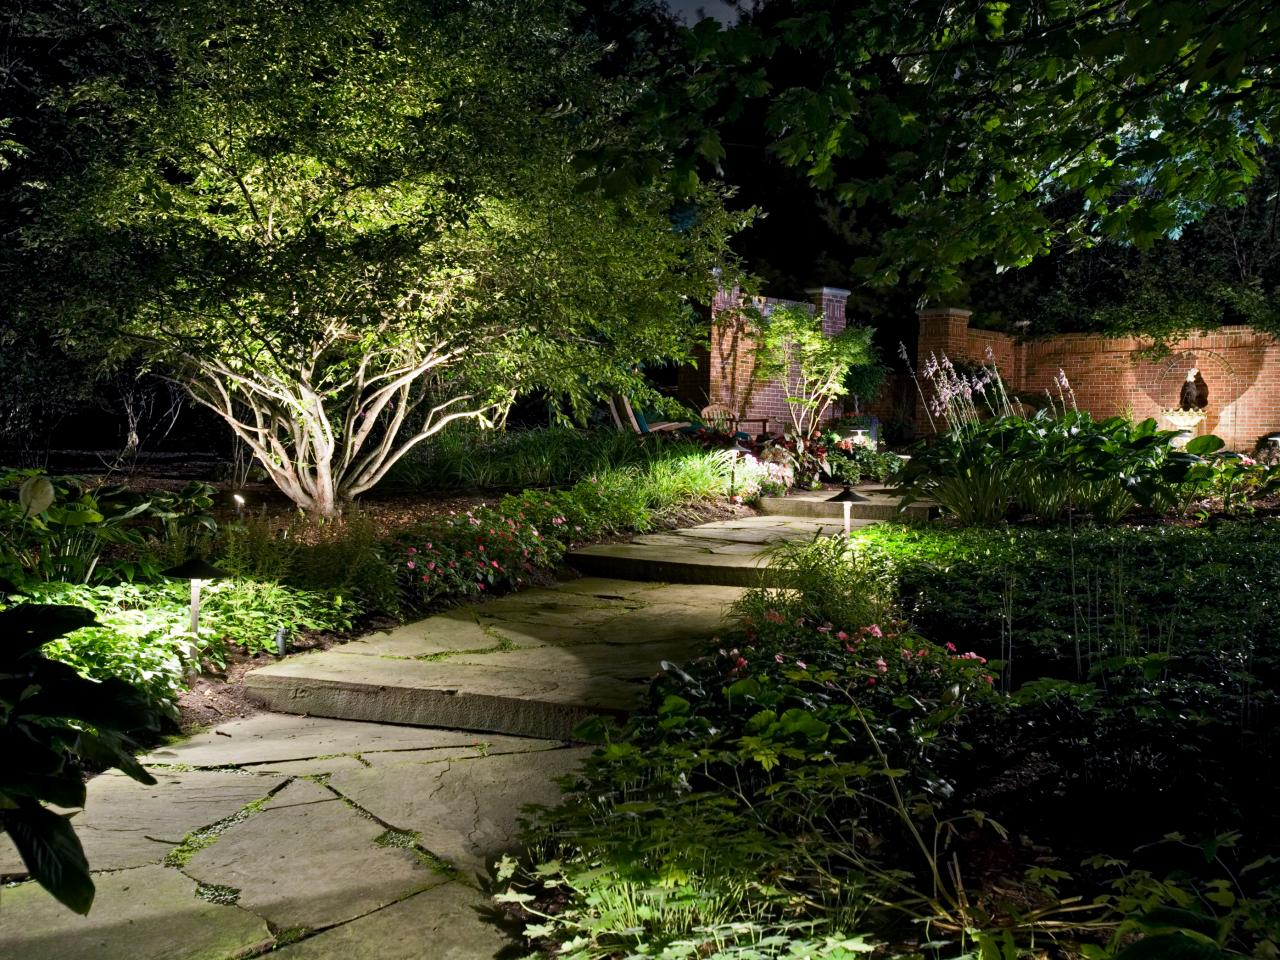 http://blueskyrain.com/wp-content/uploads/2017/02/Landscape-Lighting-Back-Pathway-BlueSkyRain.com_.jpg